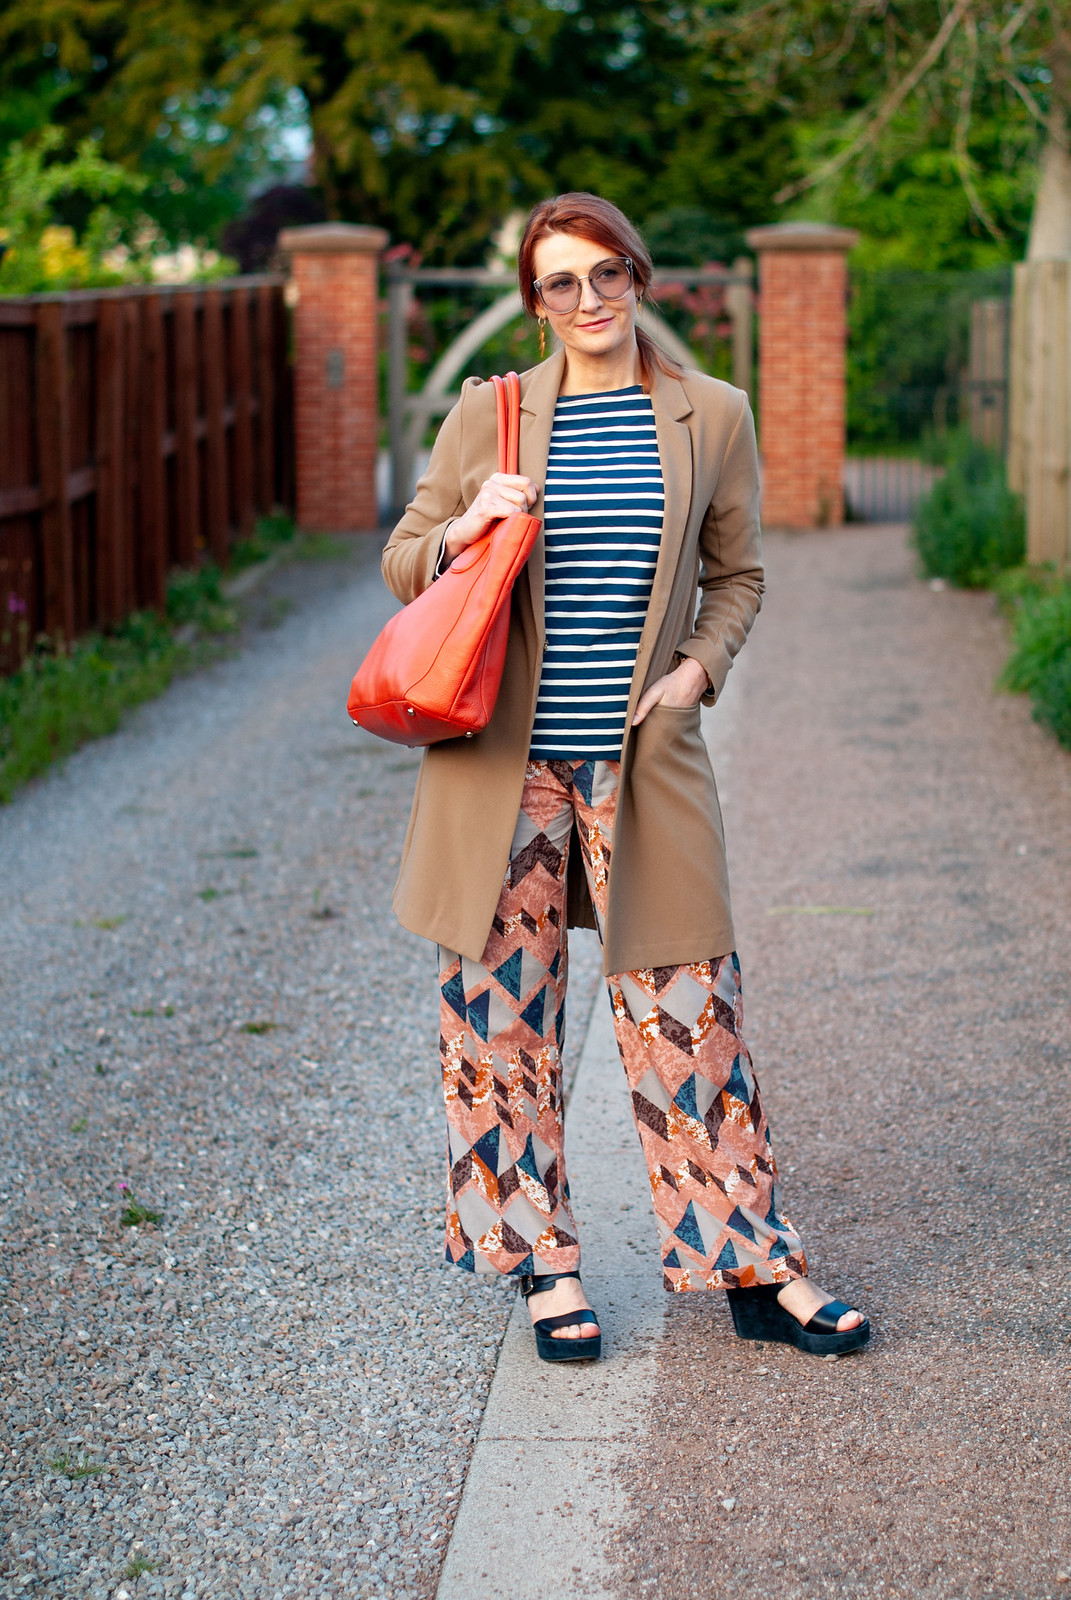 How to Create a Stylish Look With Loose-Fitting Pieces: Longline camel blazer \ navy stripe Breton top \ patterned wide leg trousers pants | Not Dressed As Lamb, over 40 style